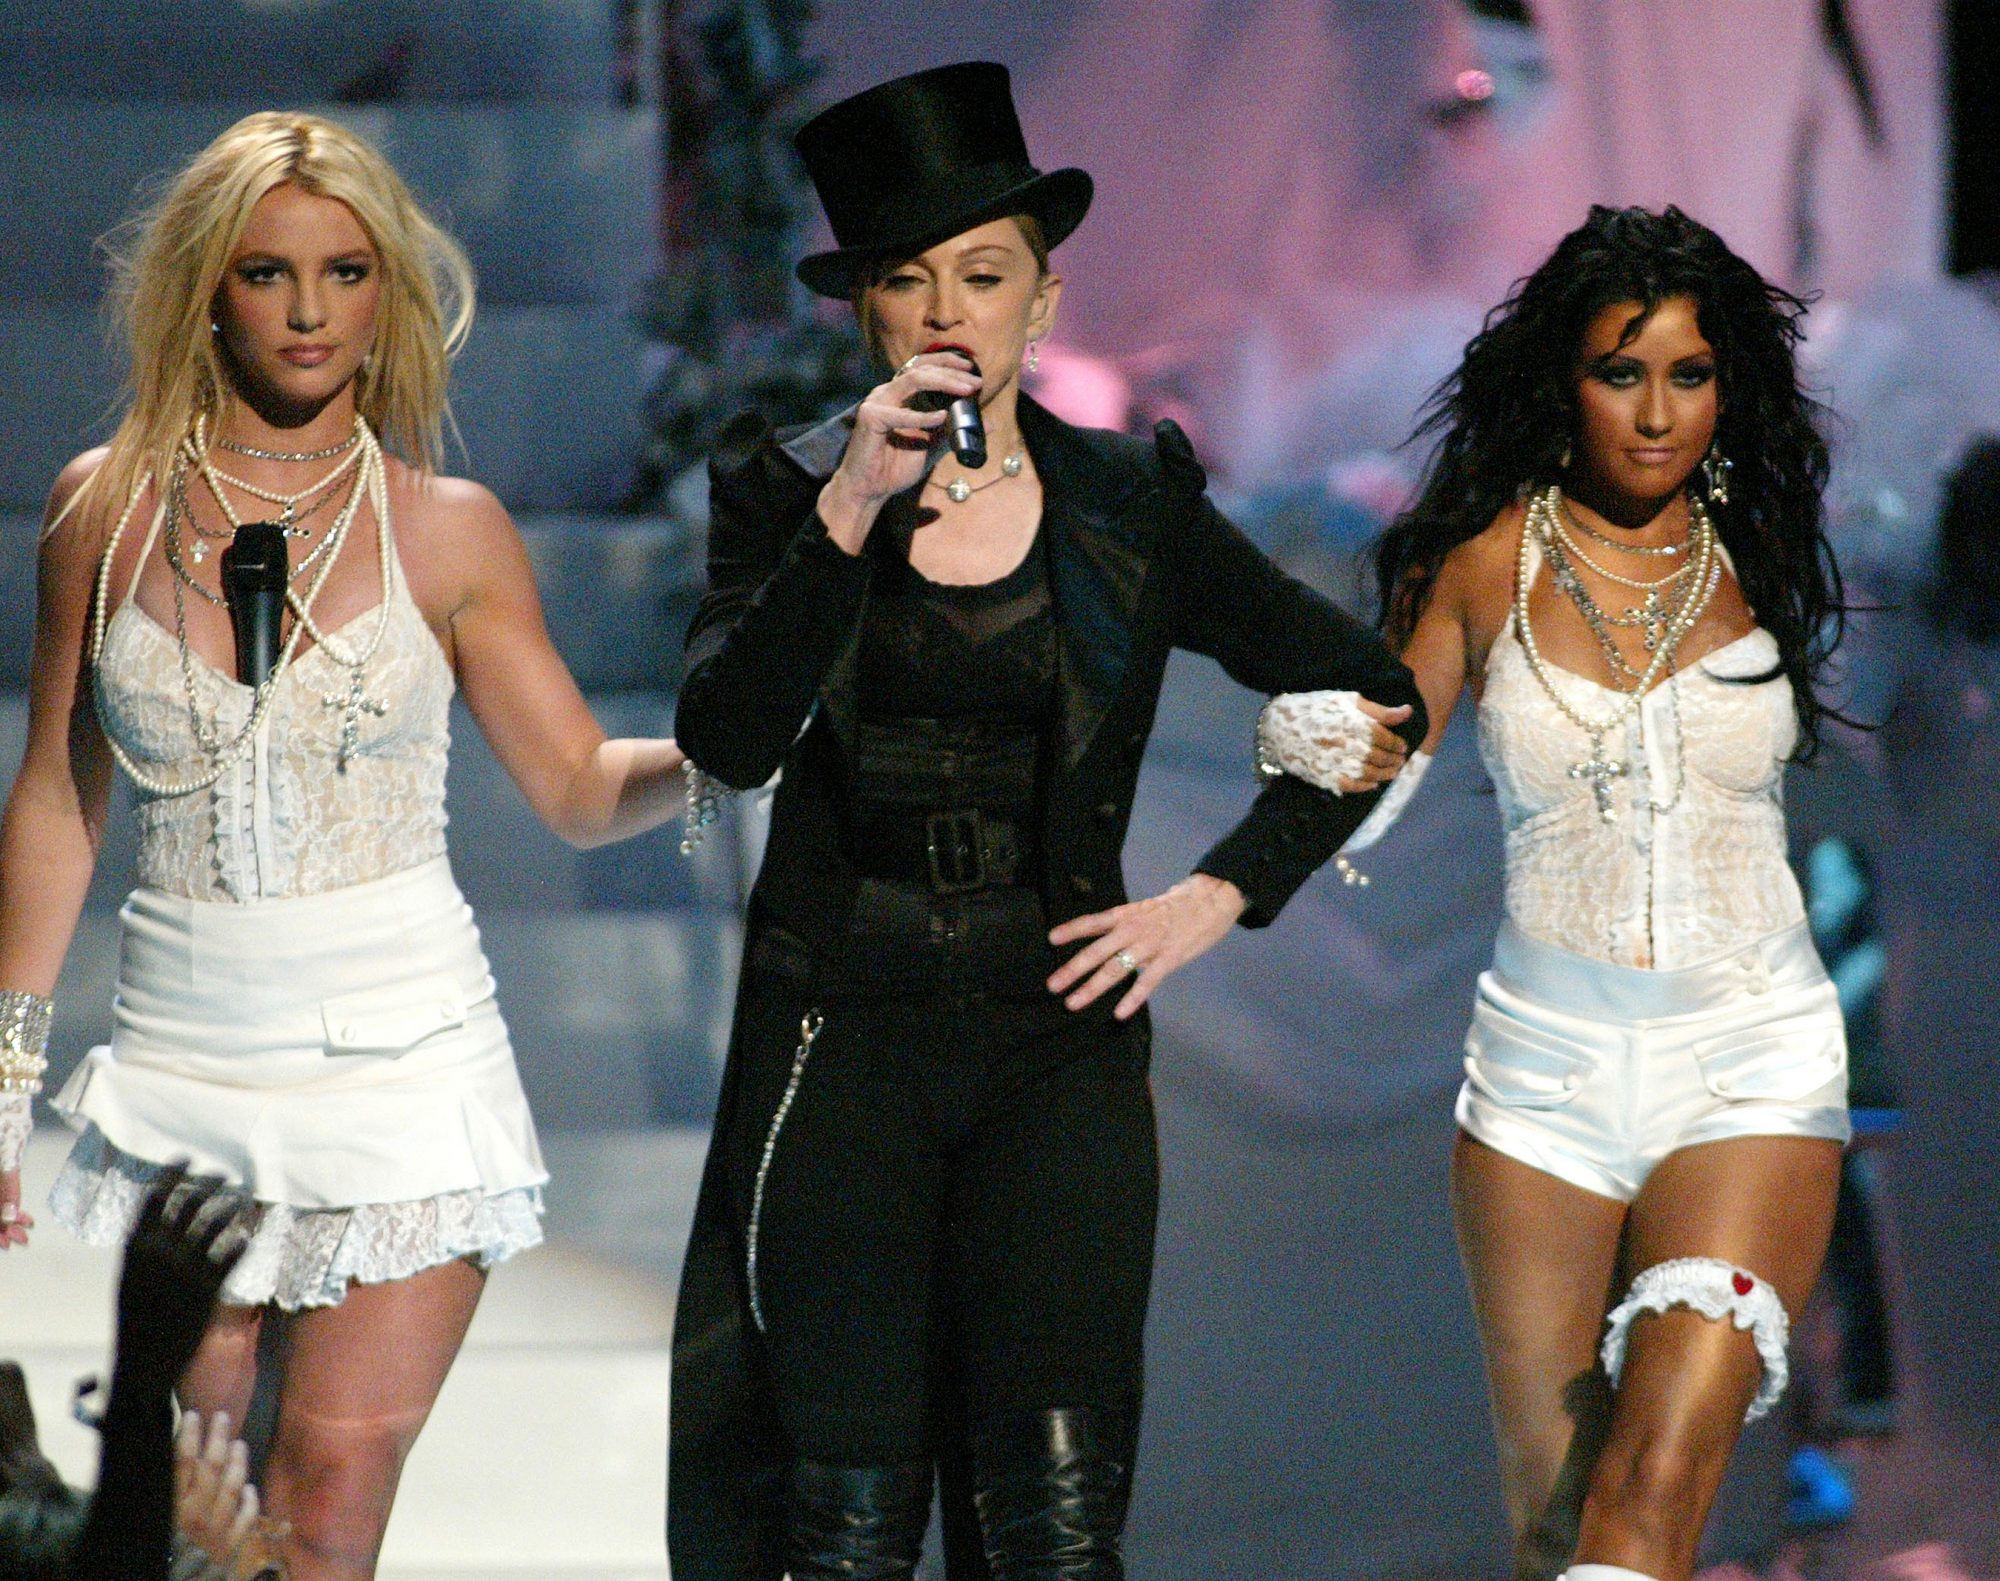 2003: Onstage at the 20th VMAs